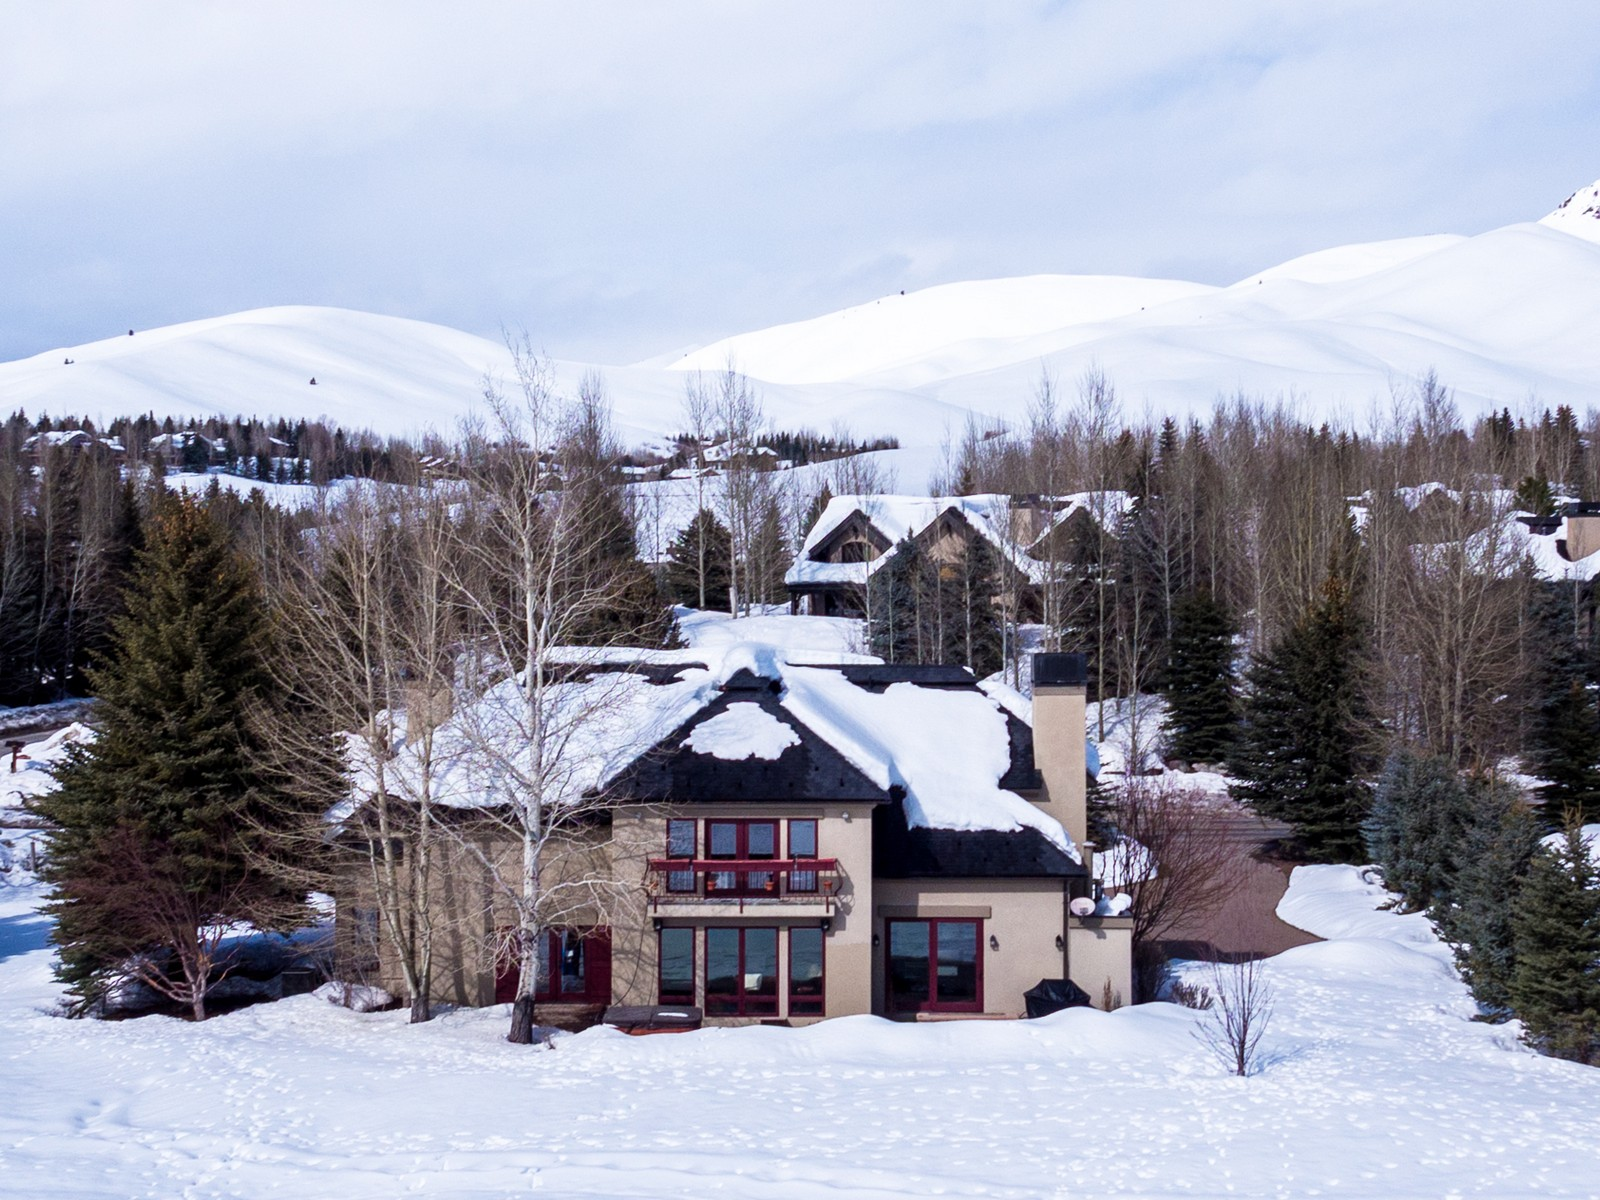 Casa Unifamiliar por un Venta en Stunning Elkhorn Golf Course Views 104 Elkhorn Rd Sun Valley, Idaho, 83353 Estados Unidos